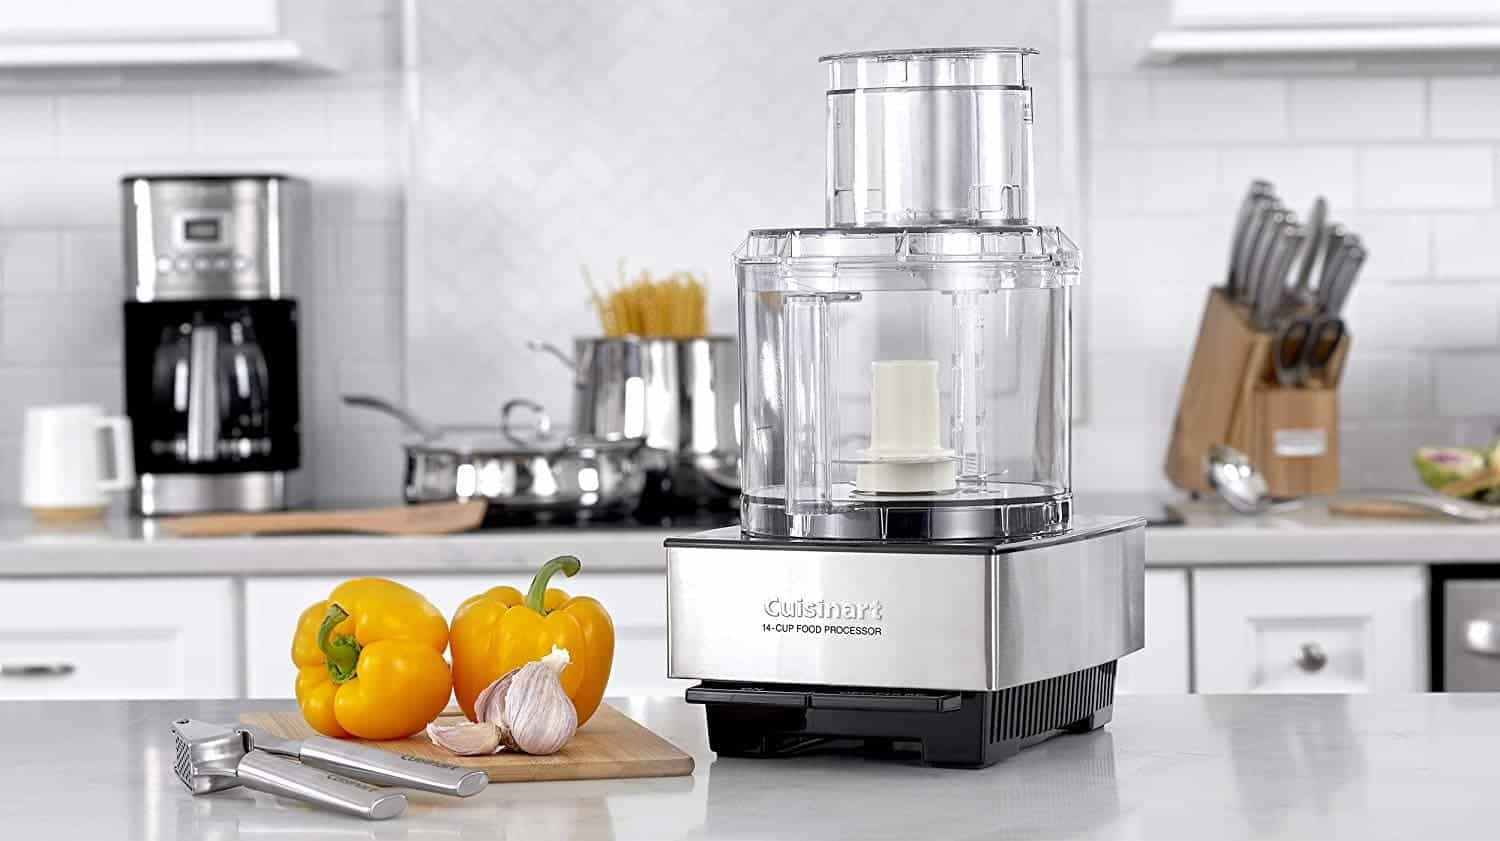 Food Processor on a Counter